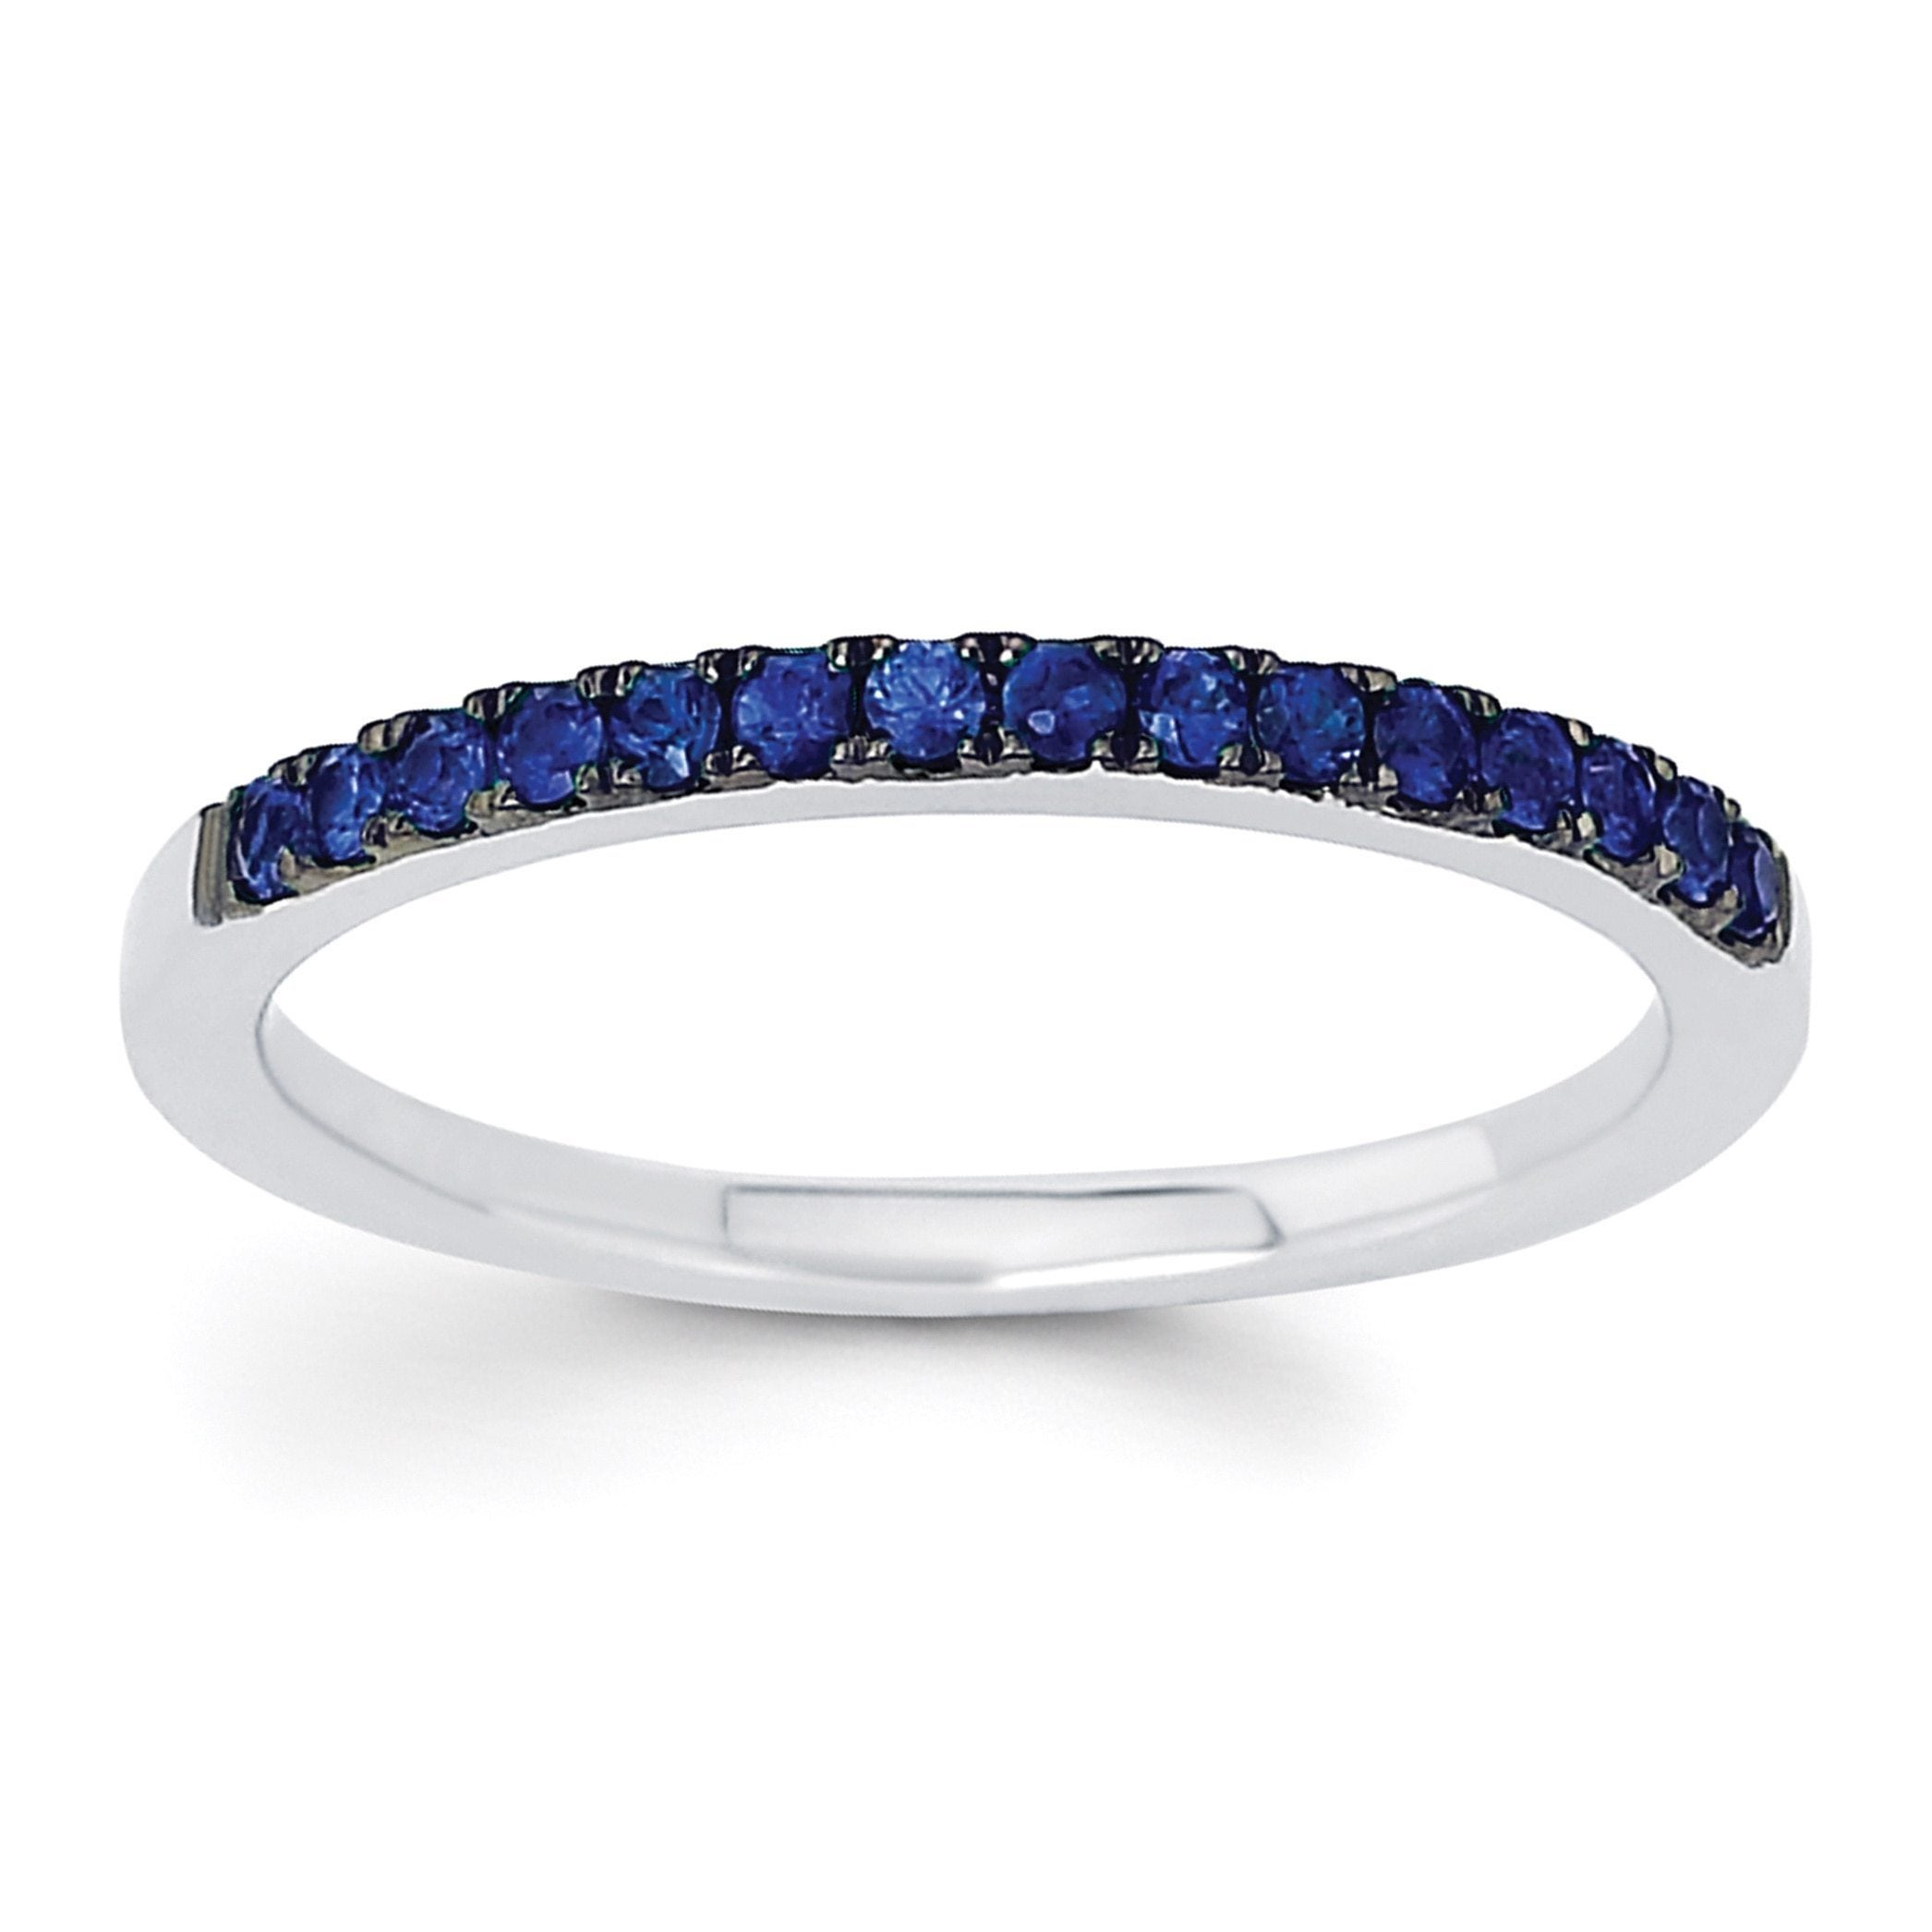 product victorian antique saffire bands ladies matthew weldon engagement jewellery sapphire img gemstone rings diamond multi stone weddings ring and dress